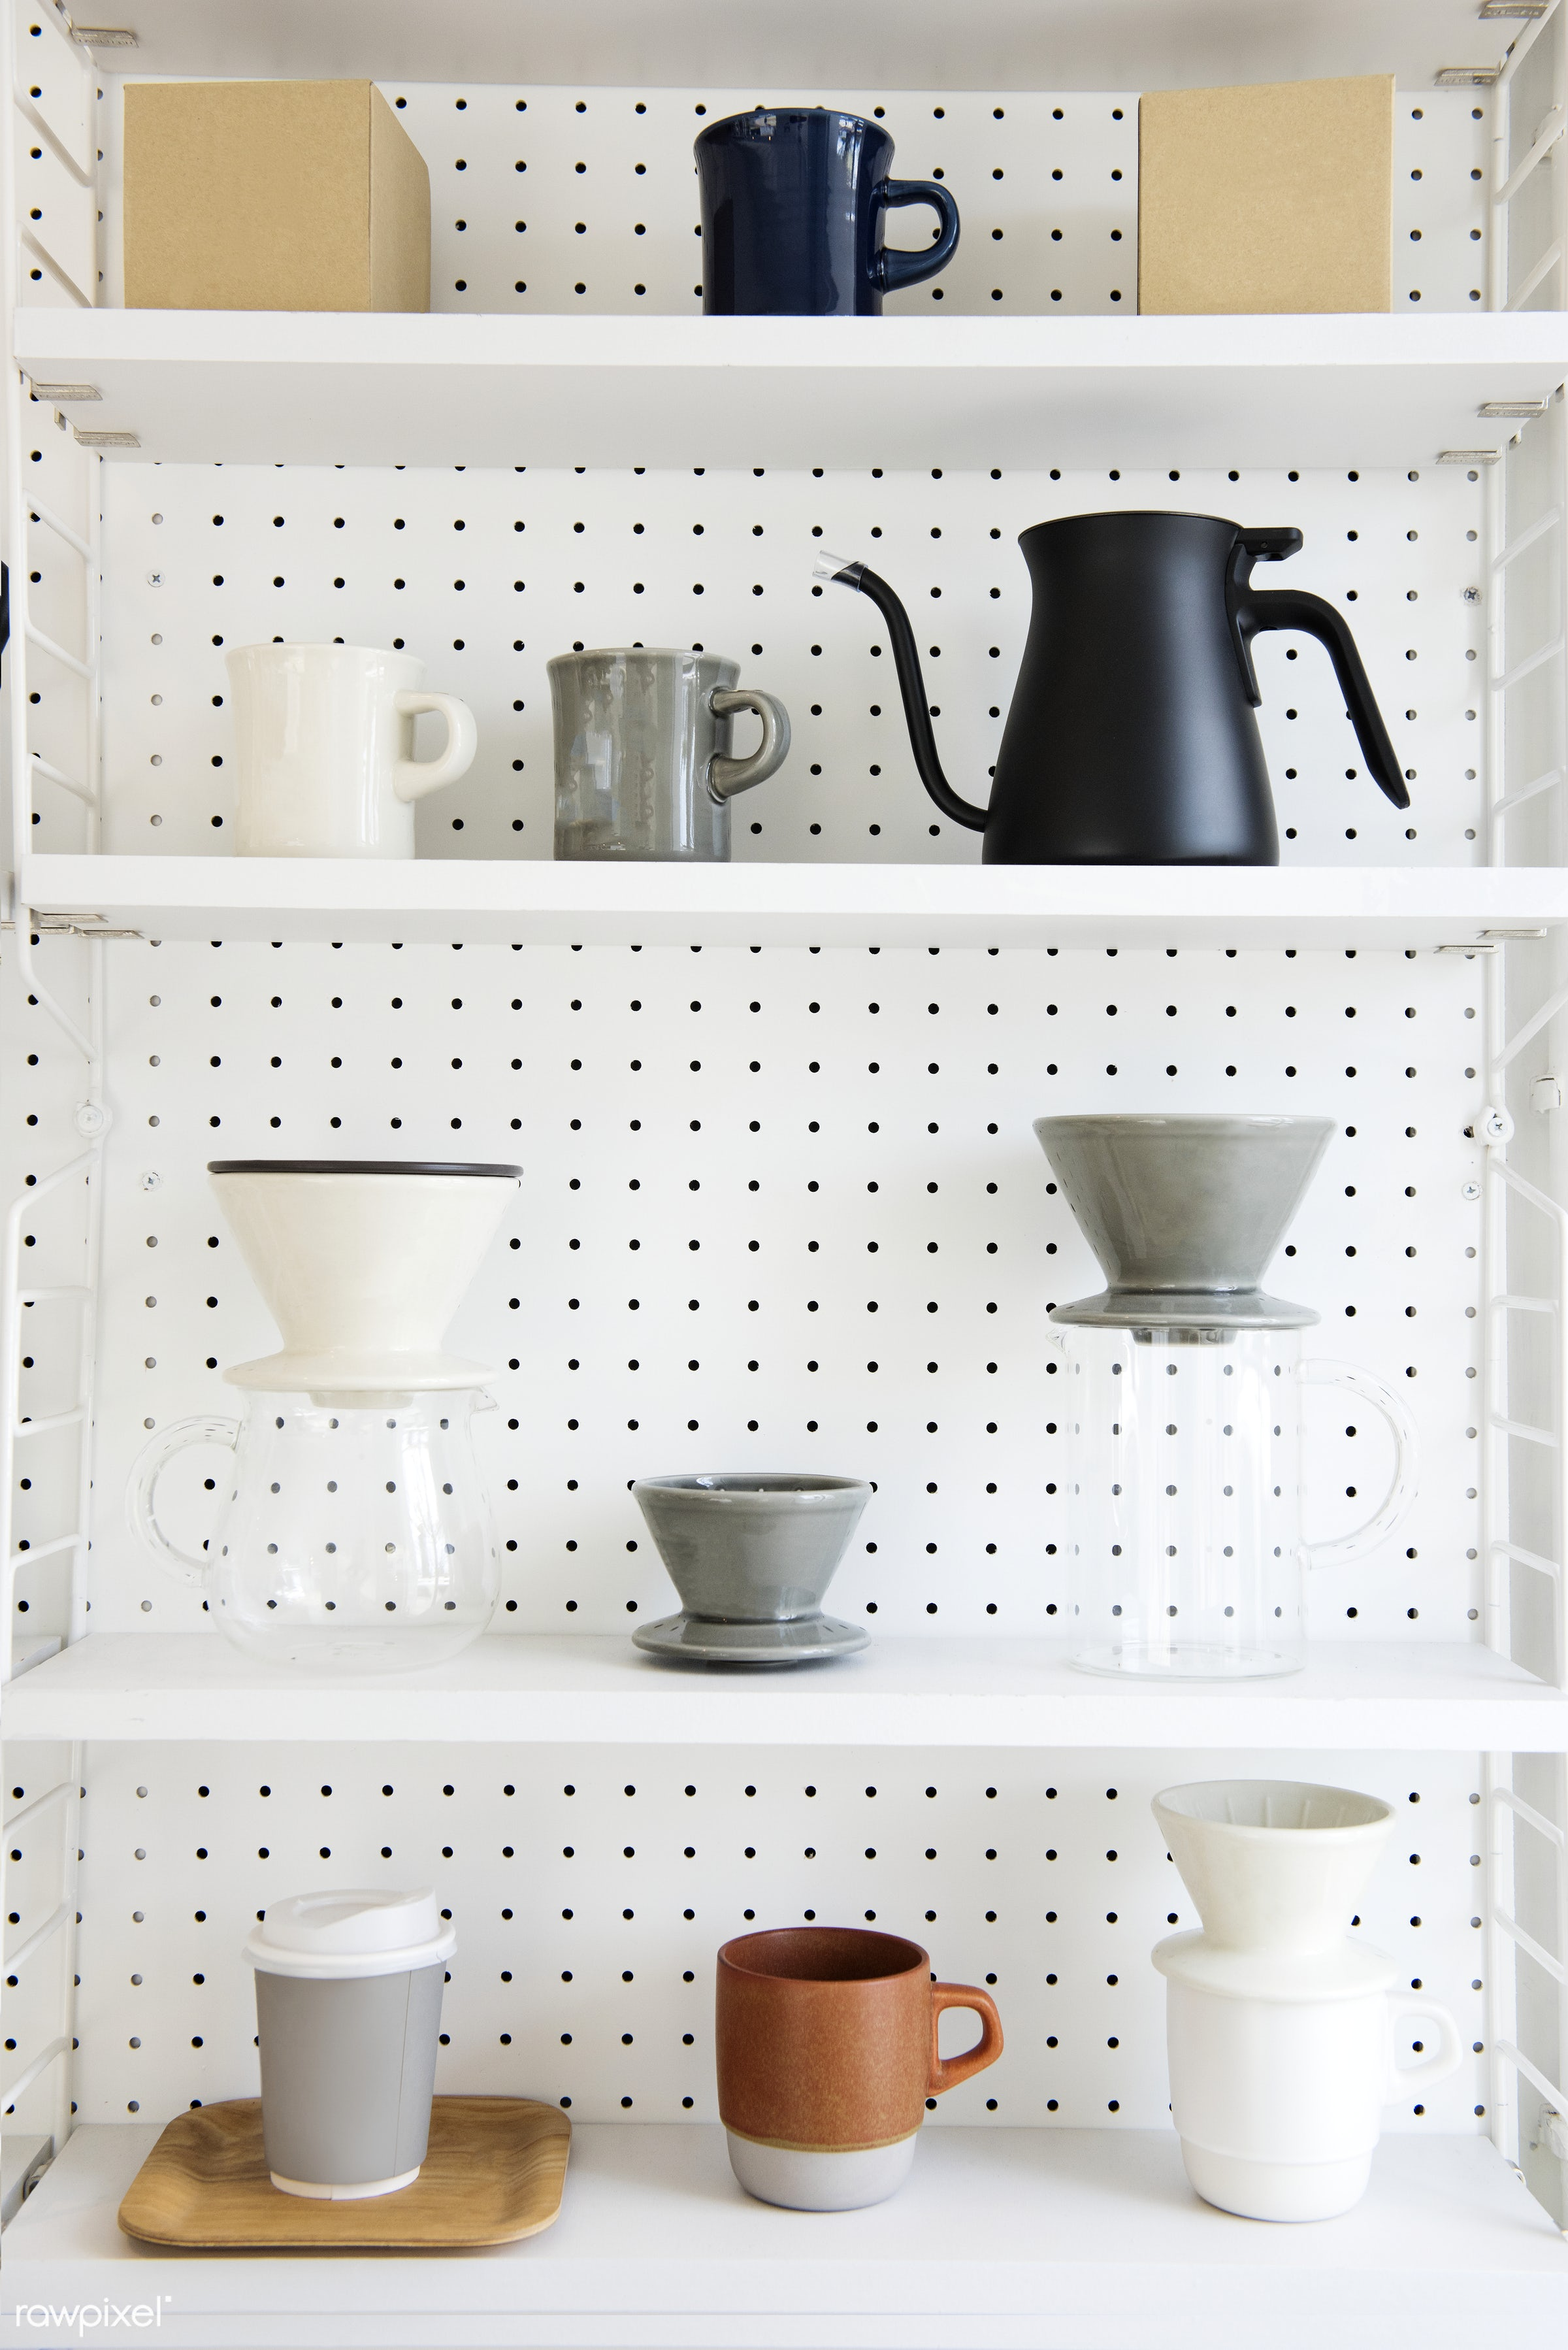 Coffee maker collection set - beverage, coffee, coffee drip, collection, cup, drink, drip, equipment, jar, jug, set, show,...